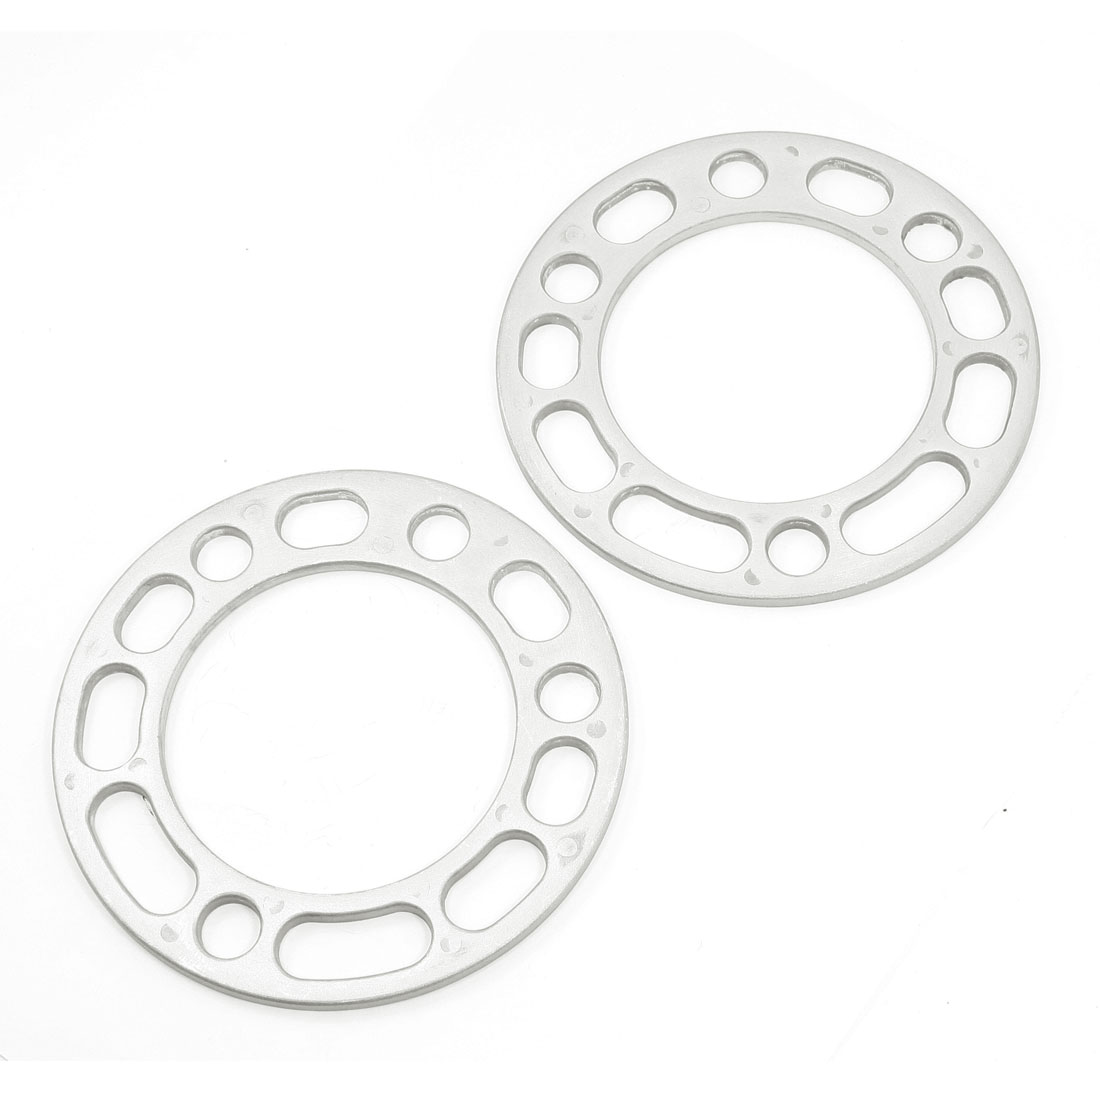 Pair Car Silver Tone Aluminum Outer Dia Wheel Spacer Gasket Spare Part(China (Mainland))